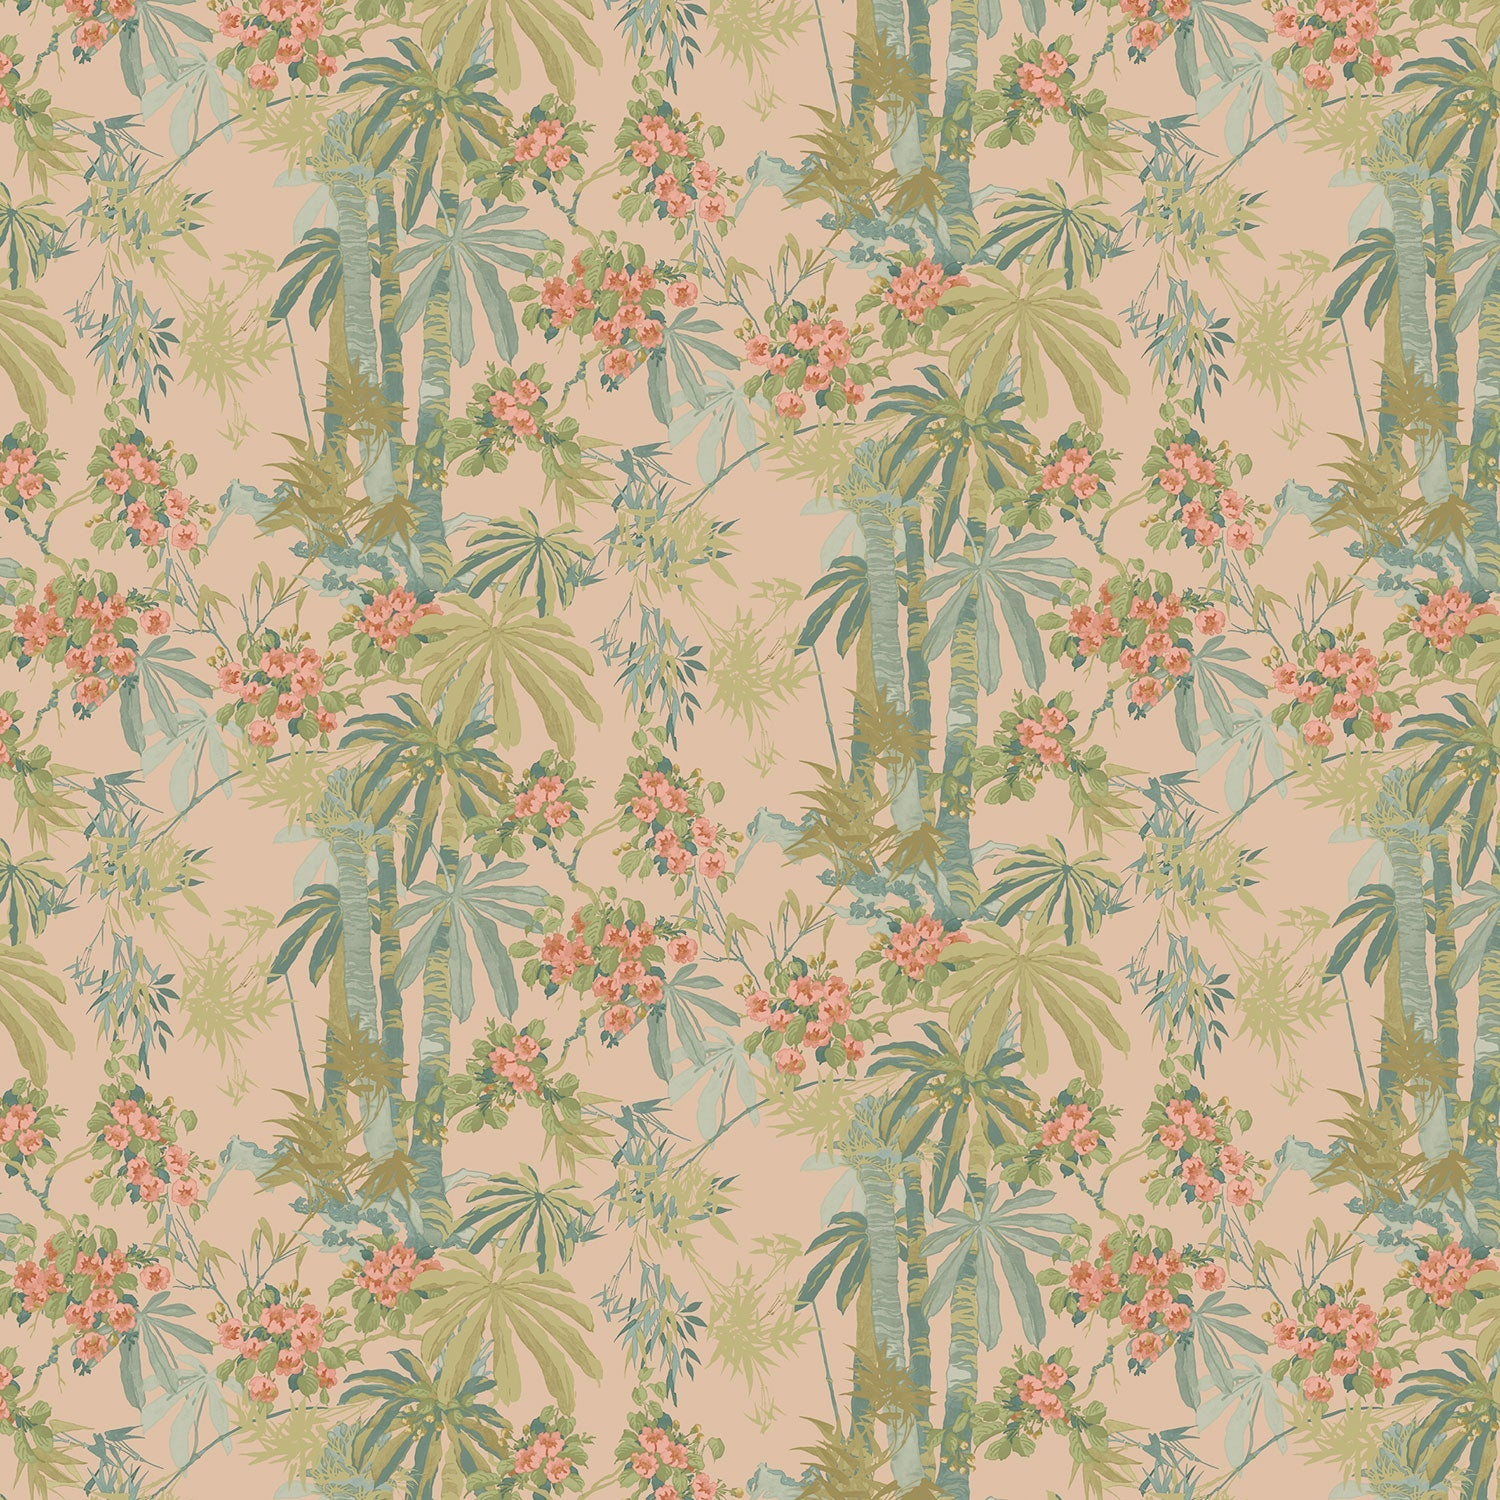 Designer wallpaper with a pink tropical palm tree design